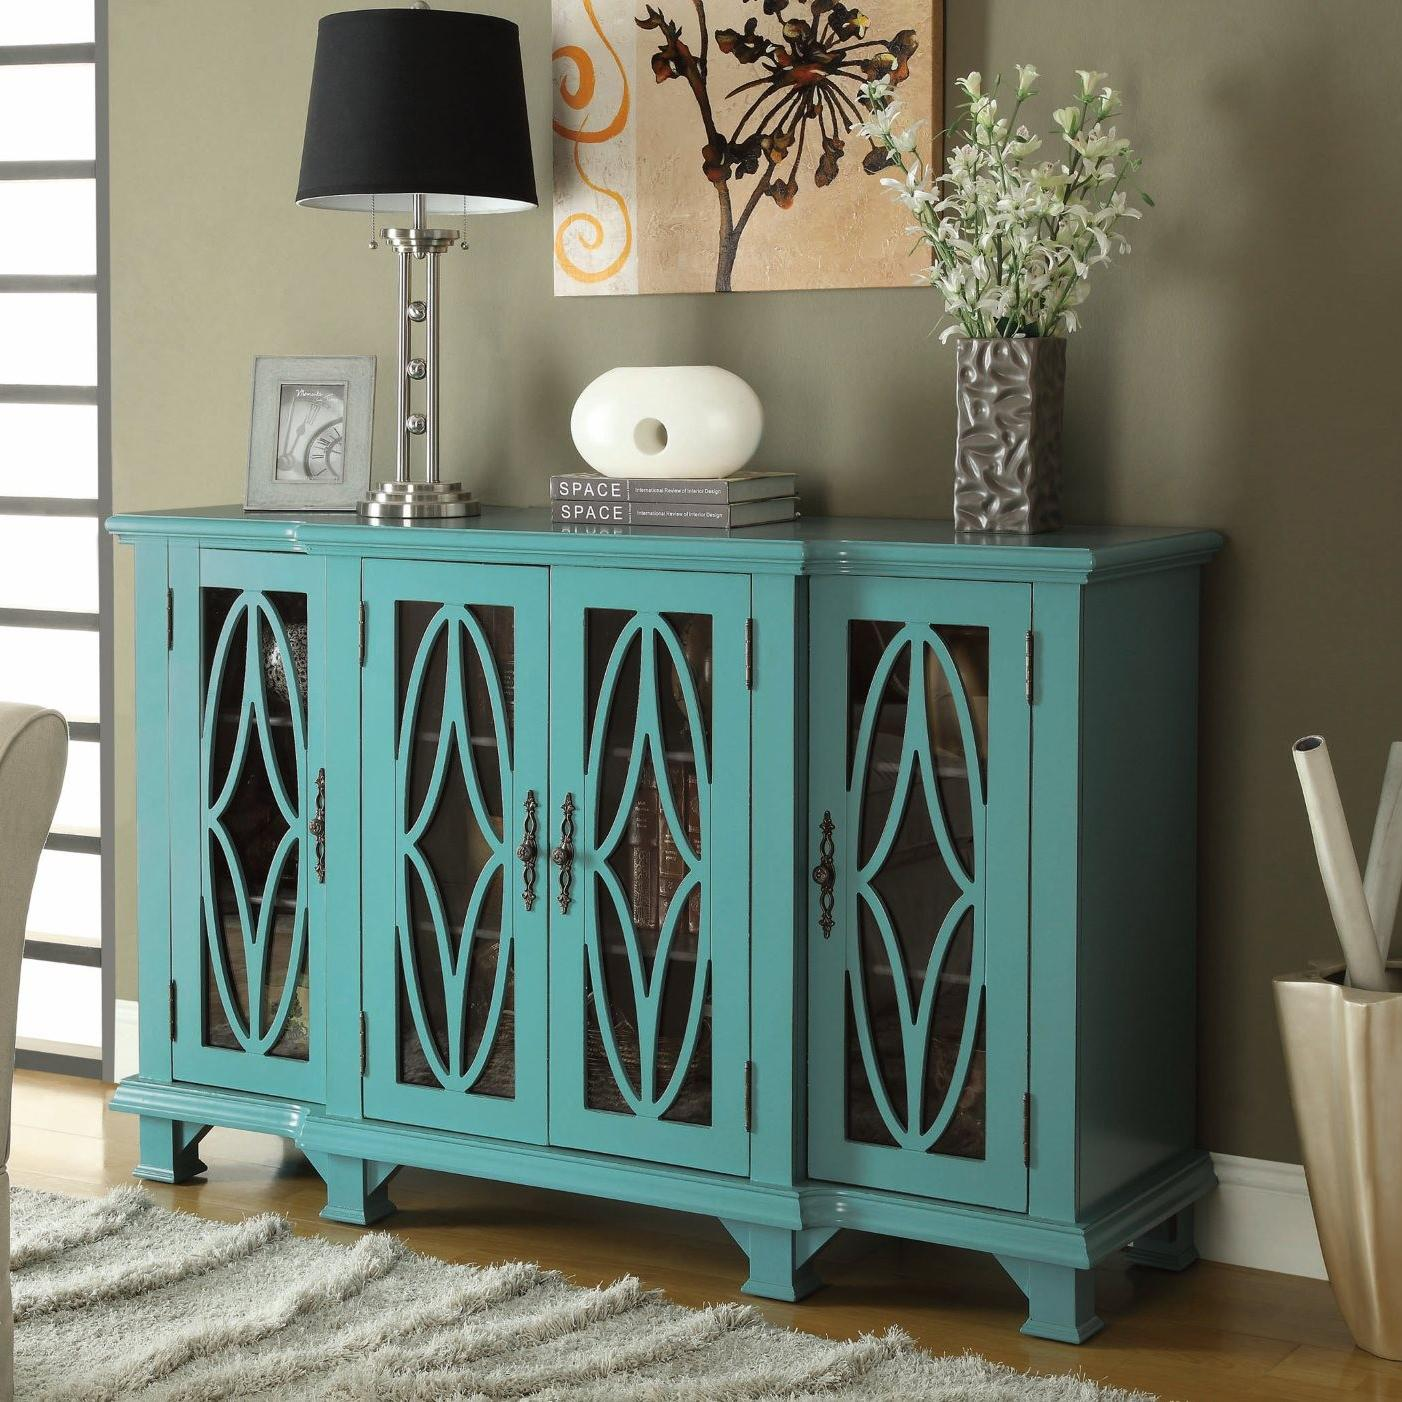 delivery estimates northeast factory direct cleveland eastlake products coaster color accent cabinets table with storage cabinet wood and metal kitchen drawer pulls west elm